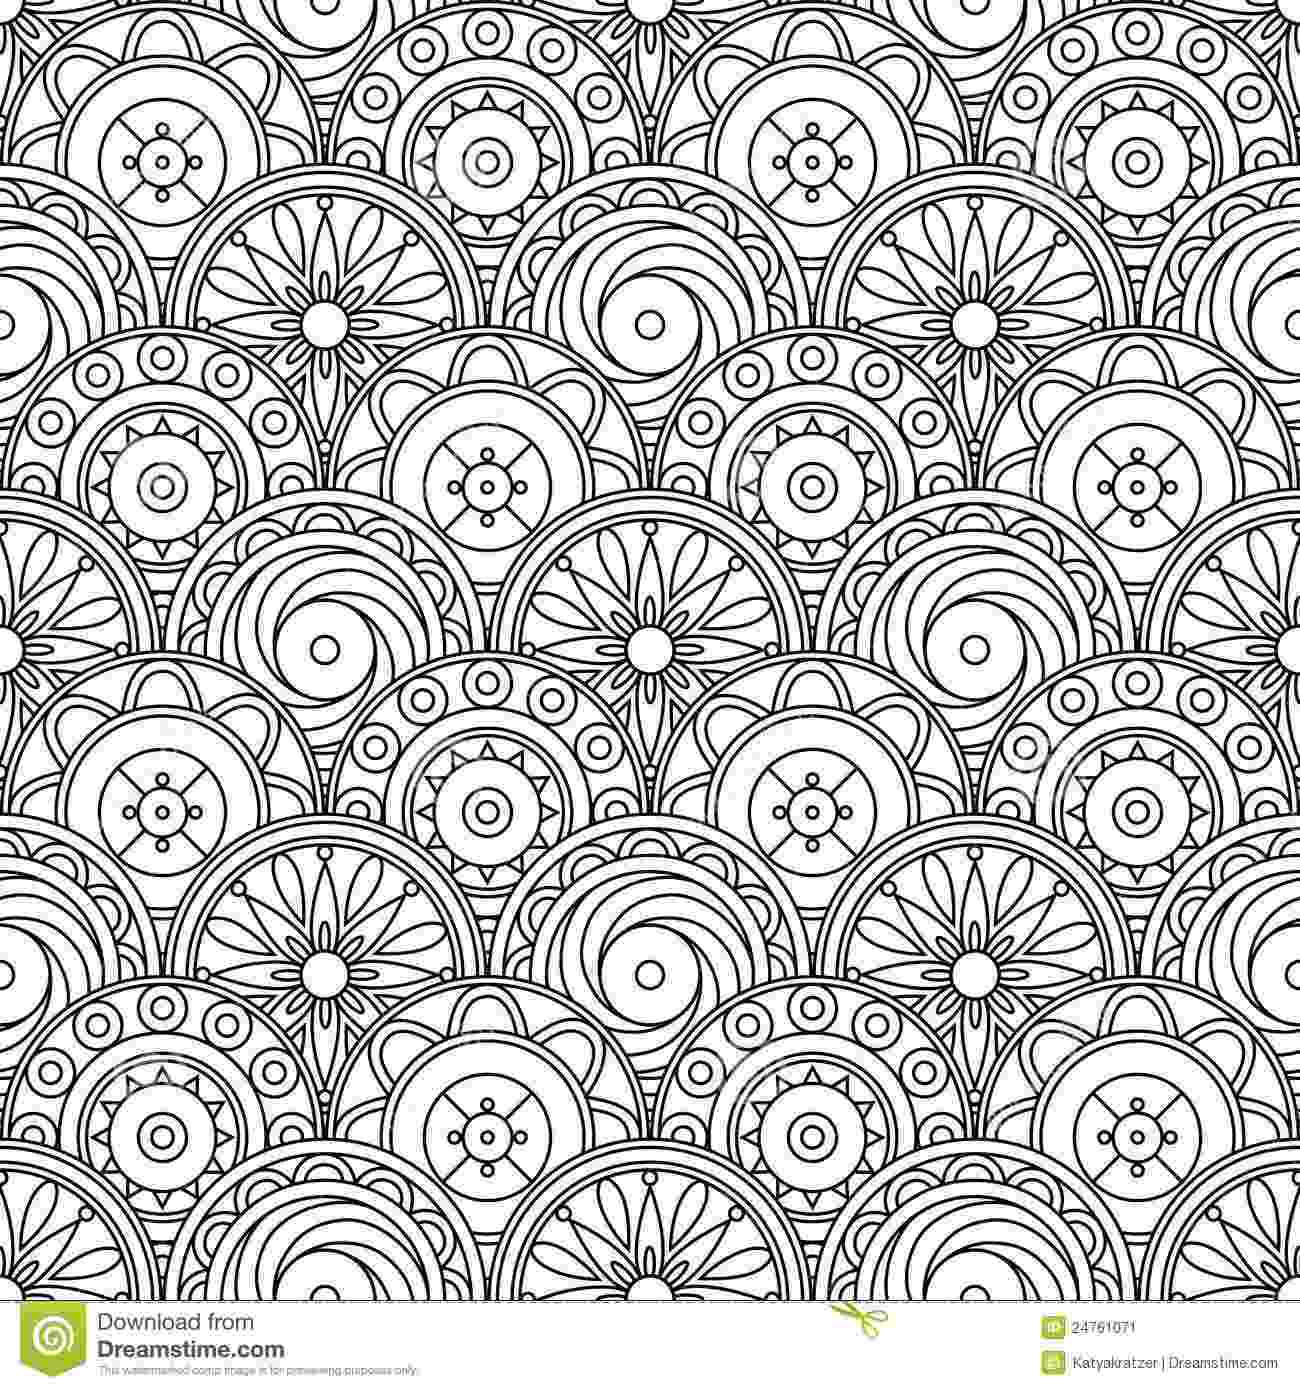 free abstract coloring pages free printable abstract coloring pages for kids coloring free pages abstract